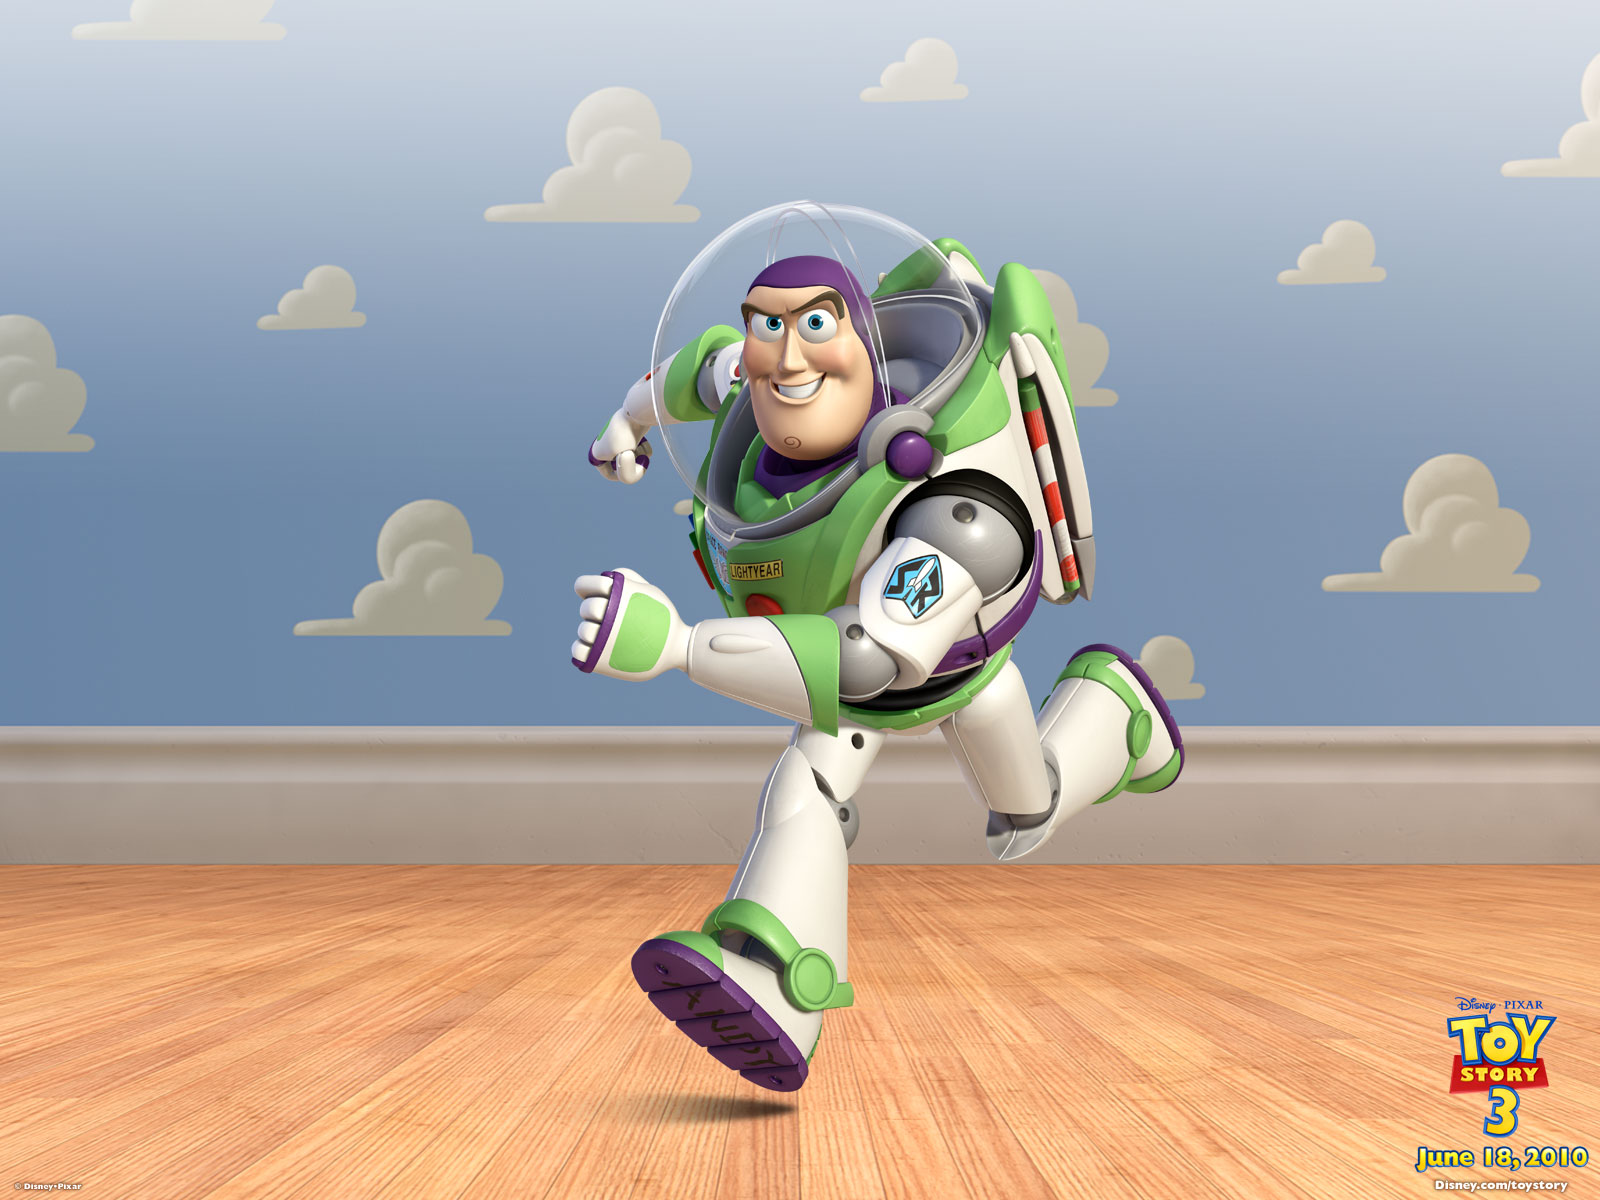 Buzz Lightyear in Toy Story 3